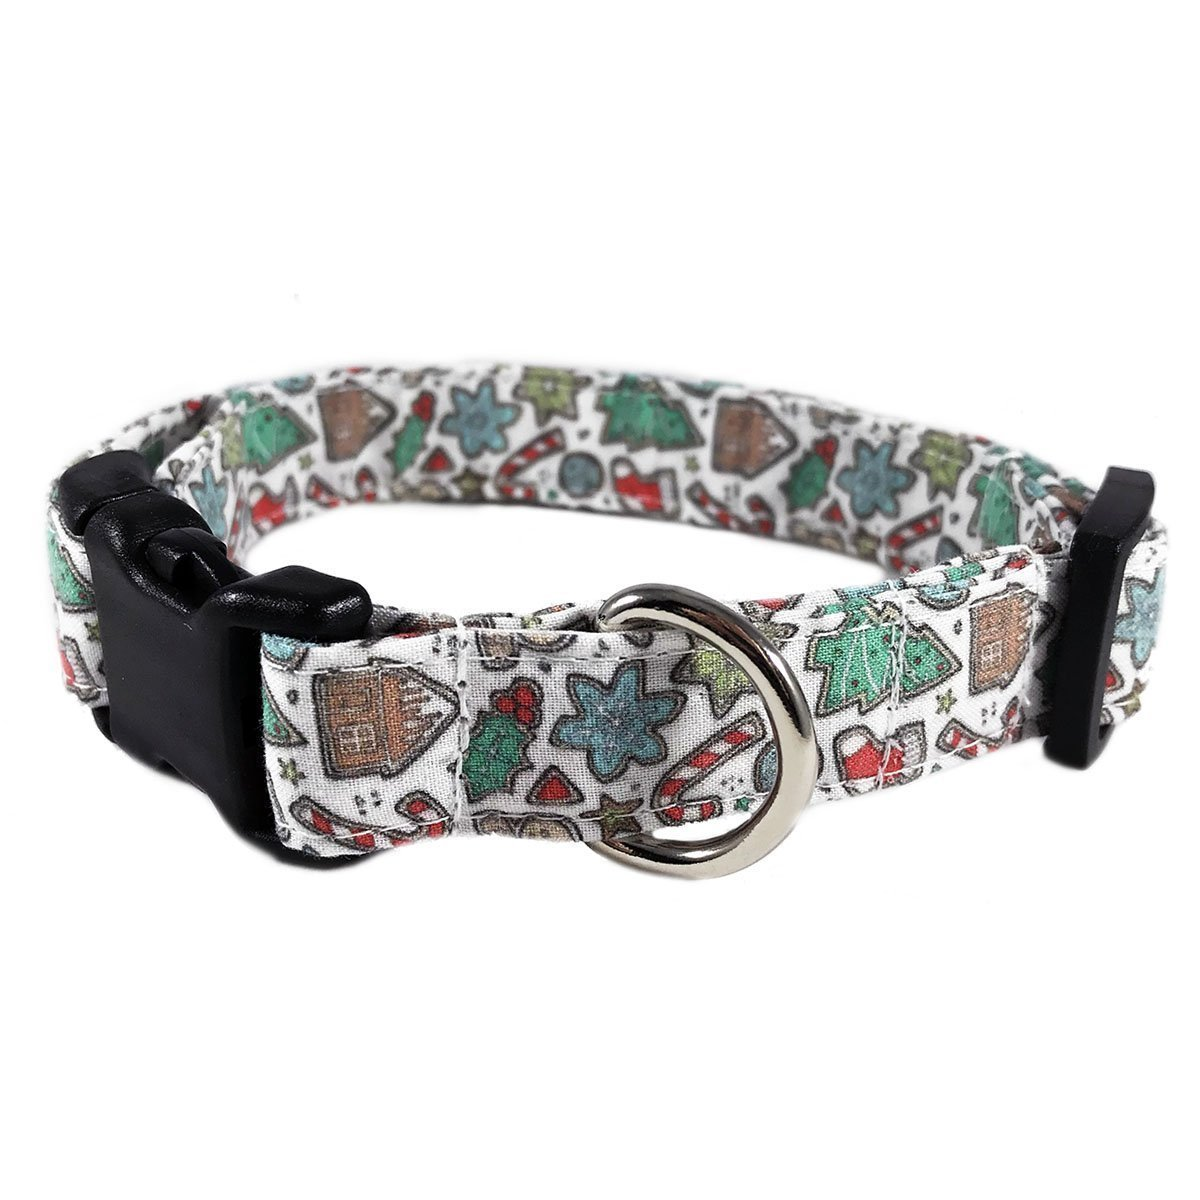 Hand Made Dog Collar - Christmas Cookies Collar for Pets Size Large 1